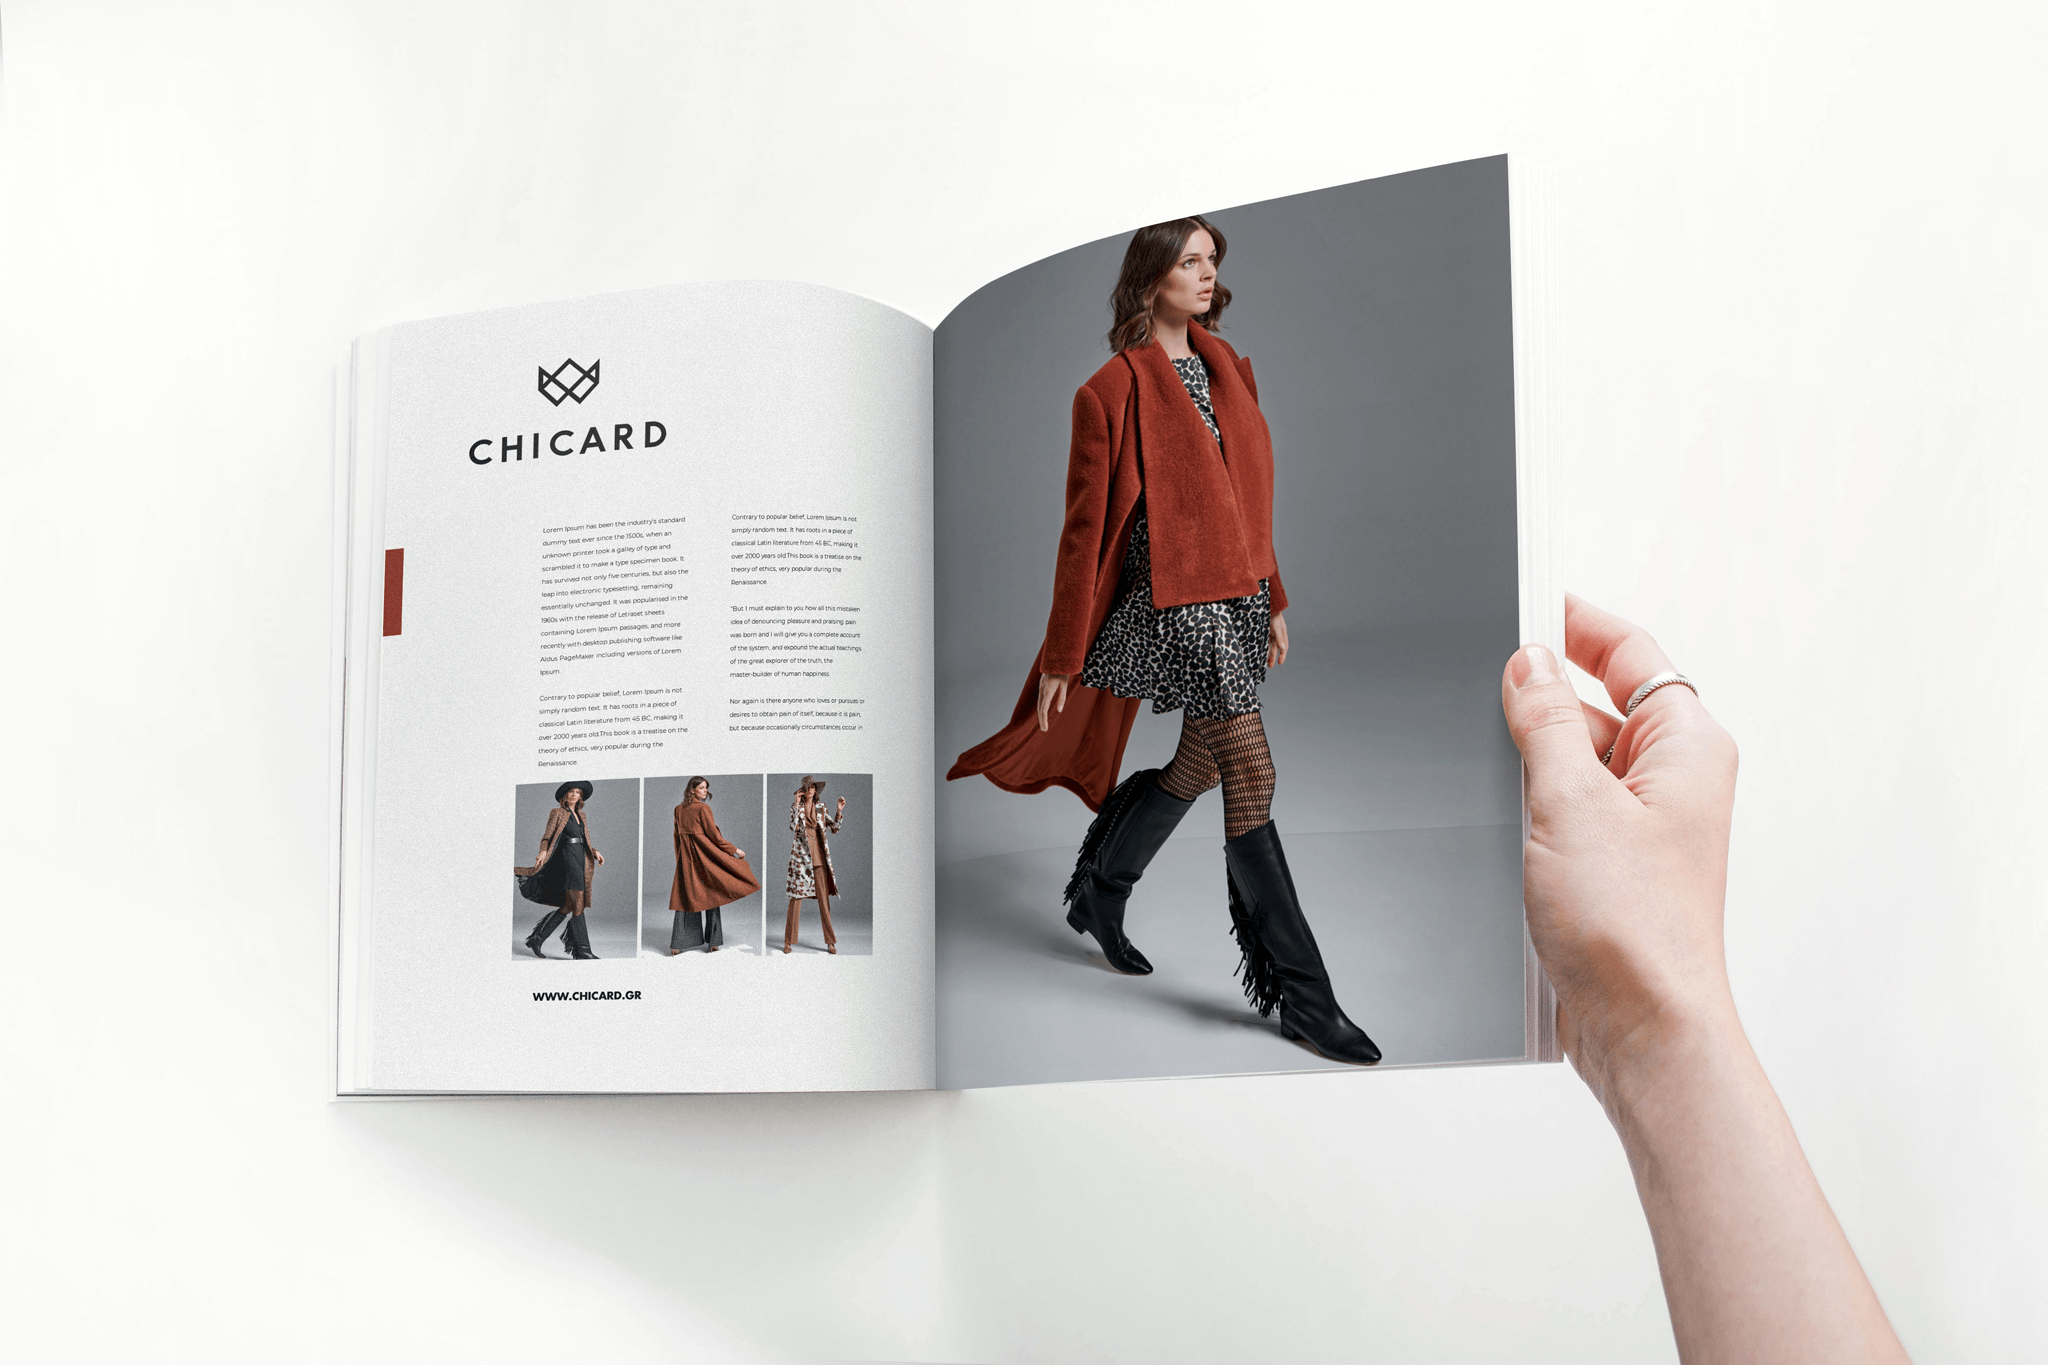 chicard wome's fashion magazine ad